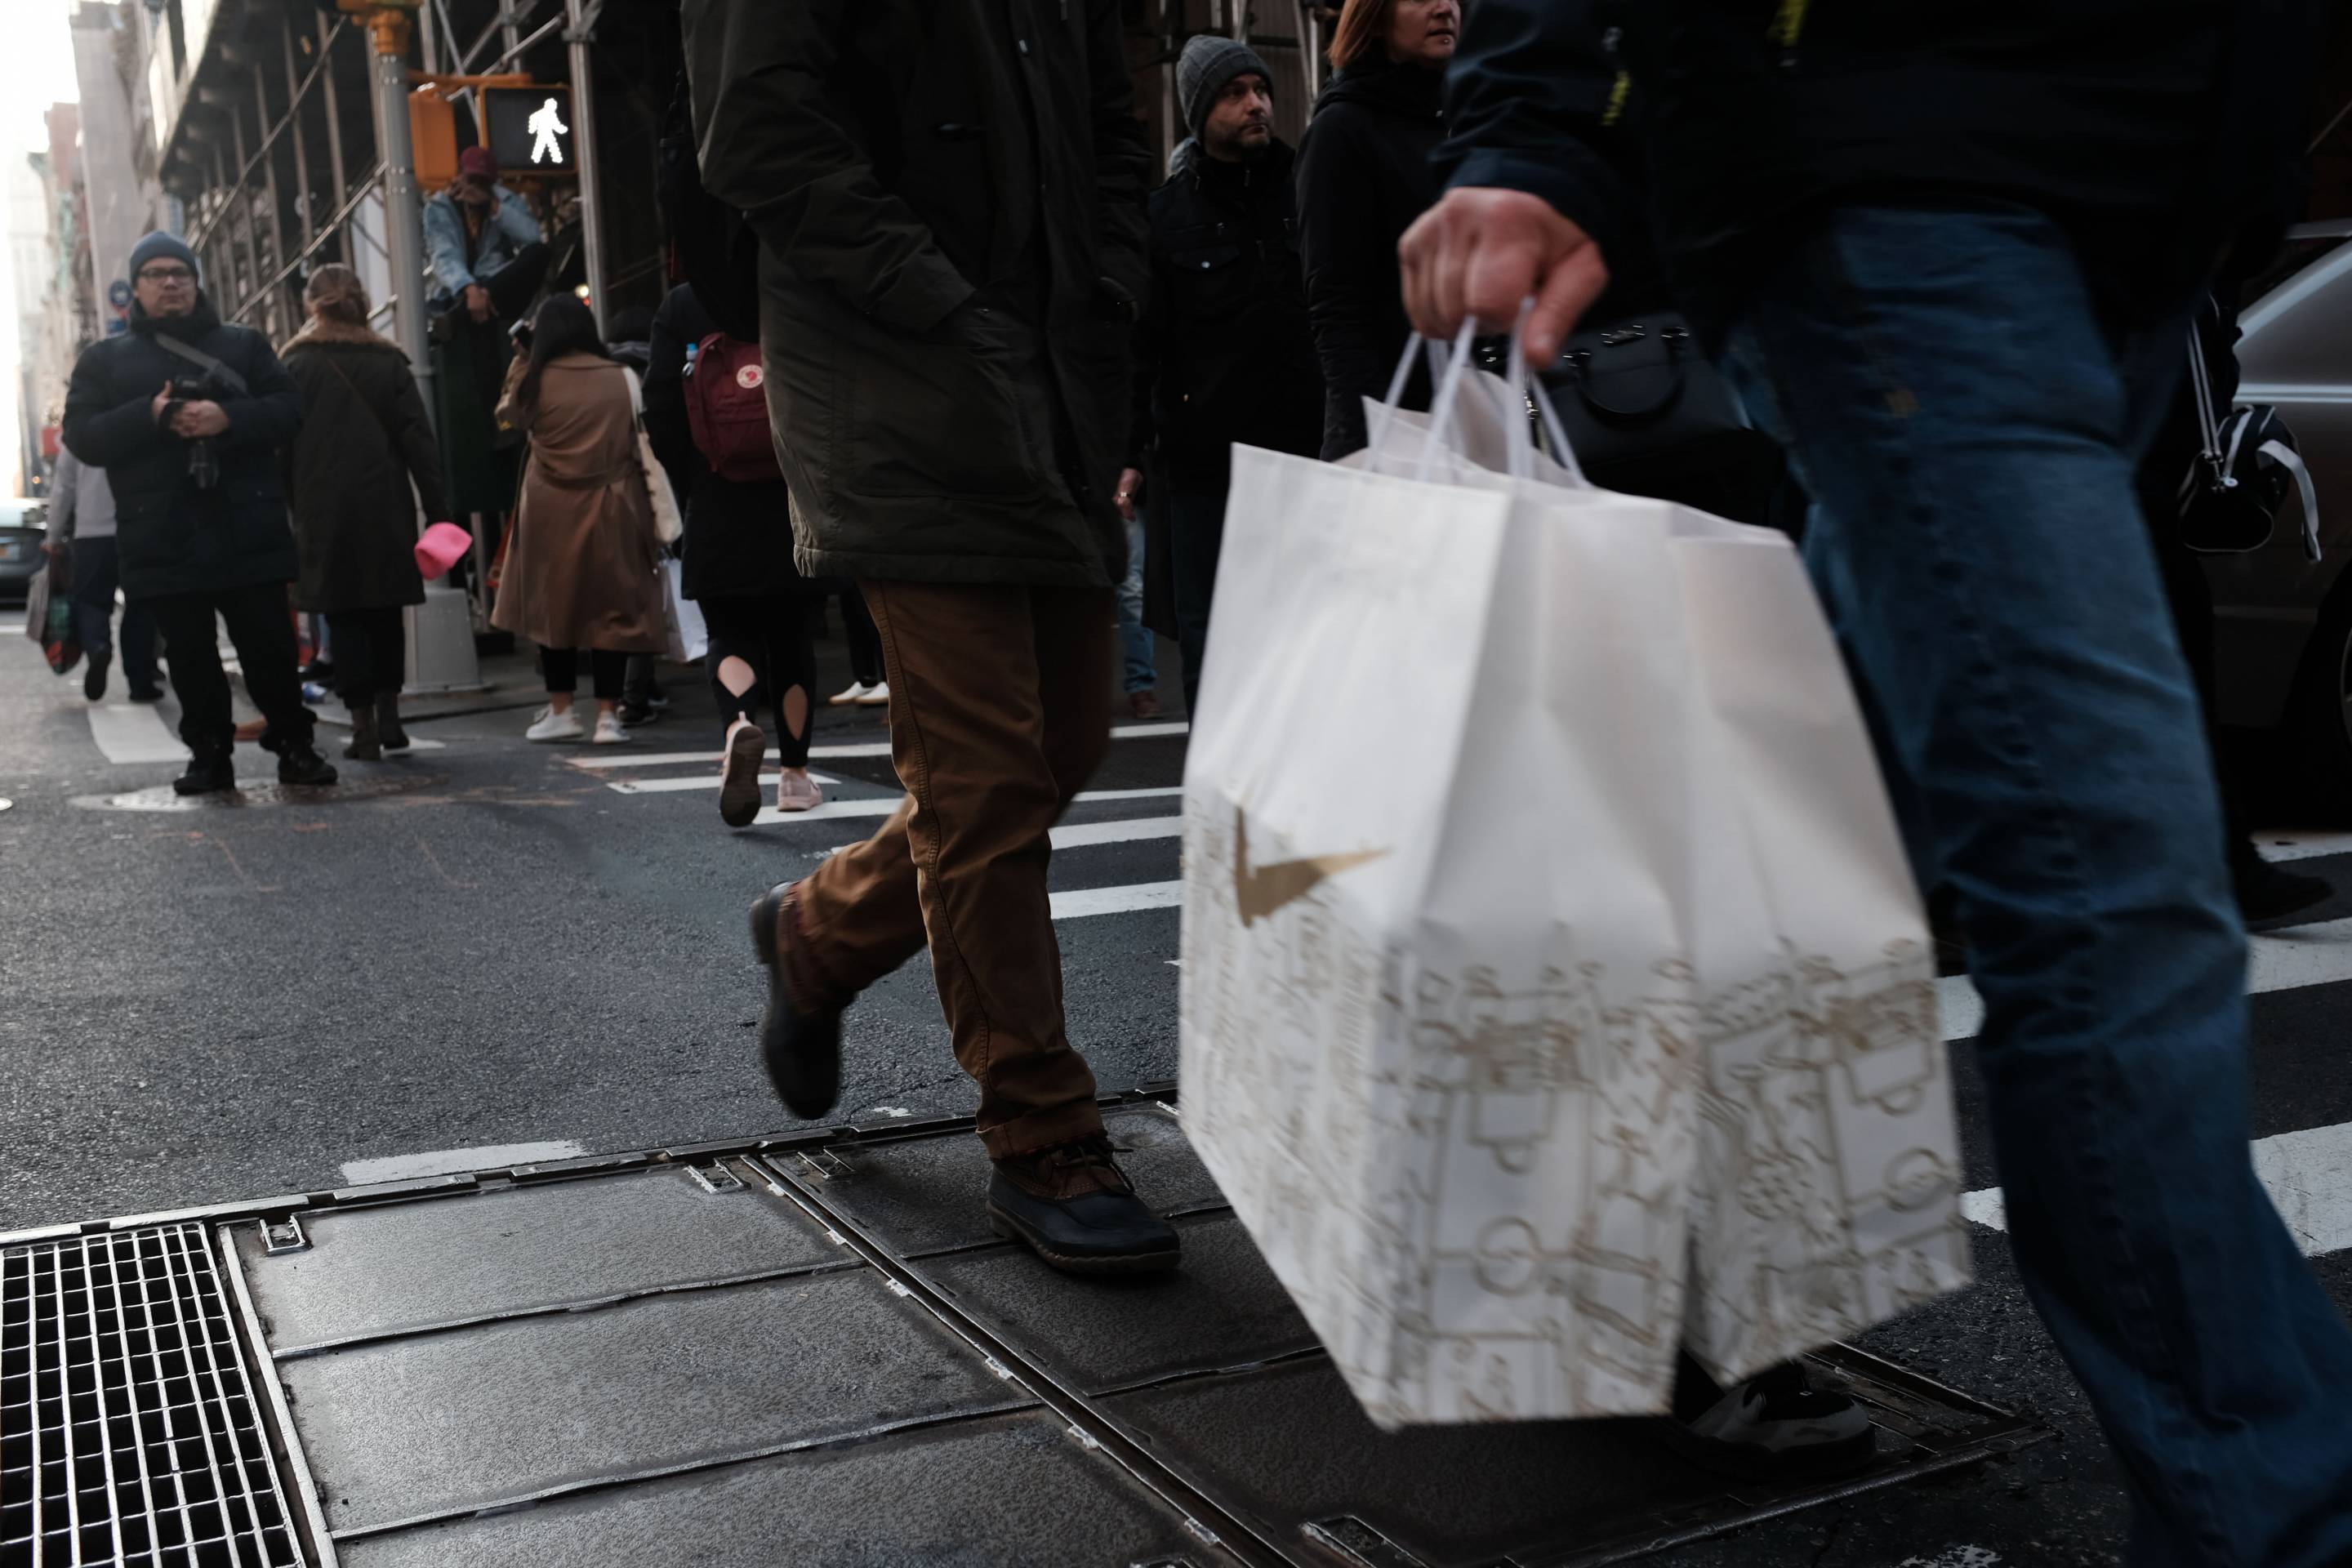 Last Minute Holiday Shoppers Hit The Stores in Manhattan